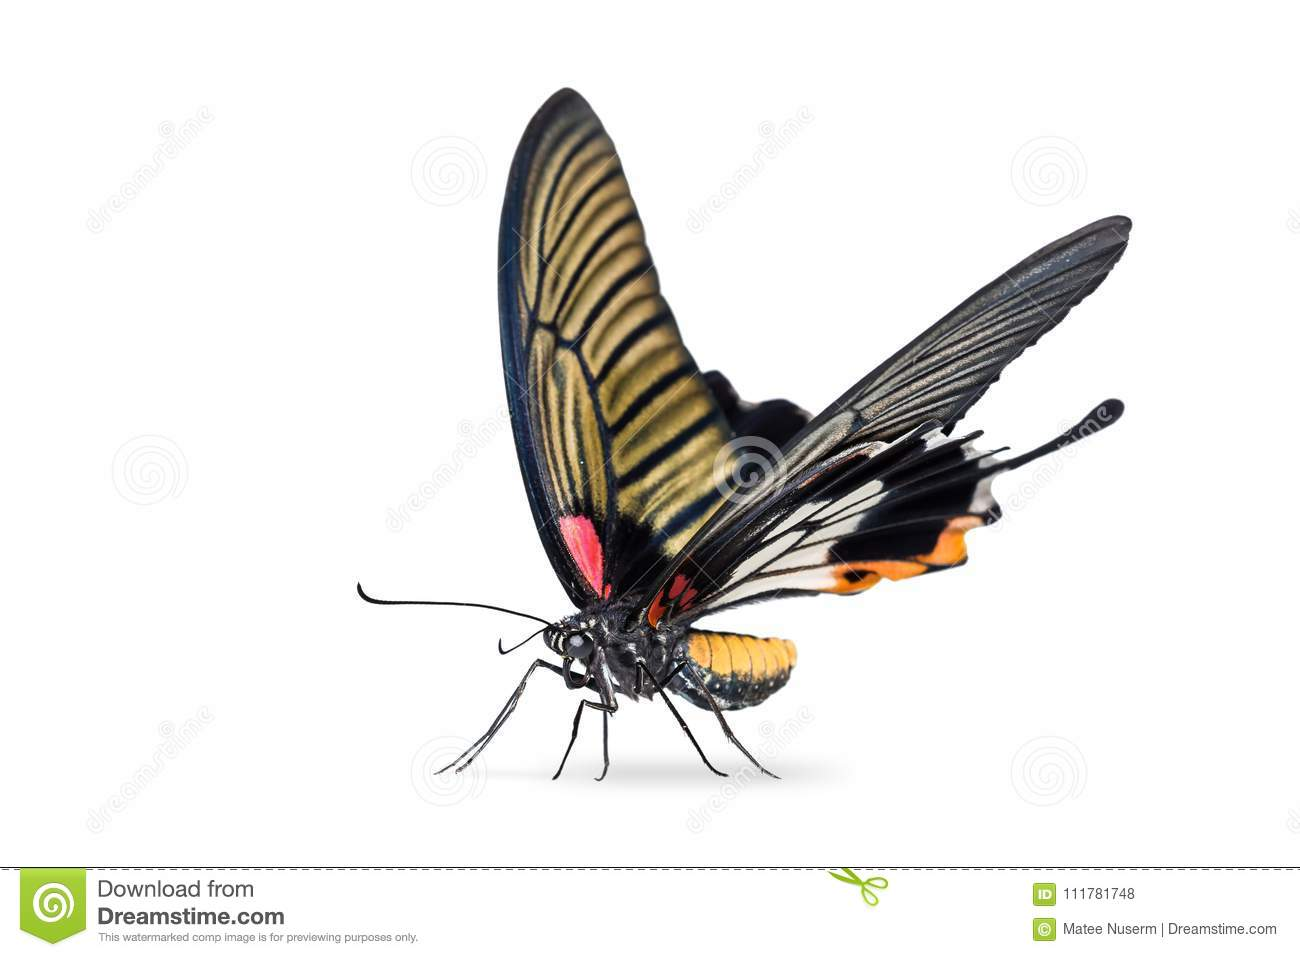 Female Great Mormon Papilio memnon butterfly